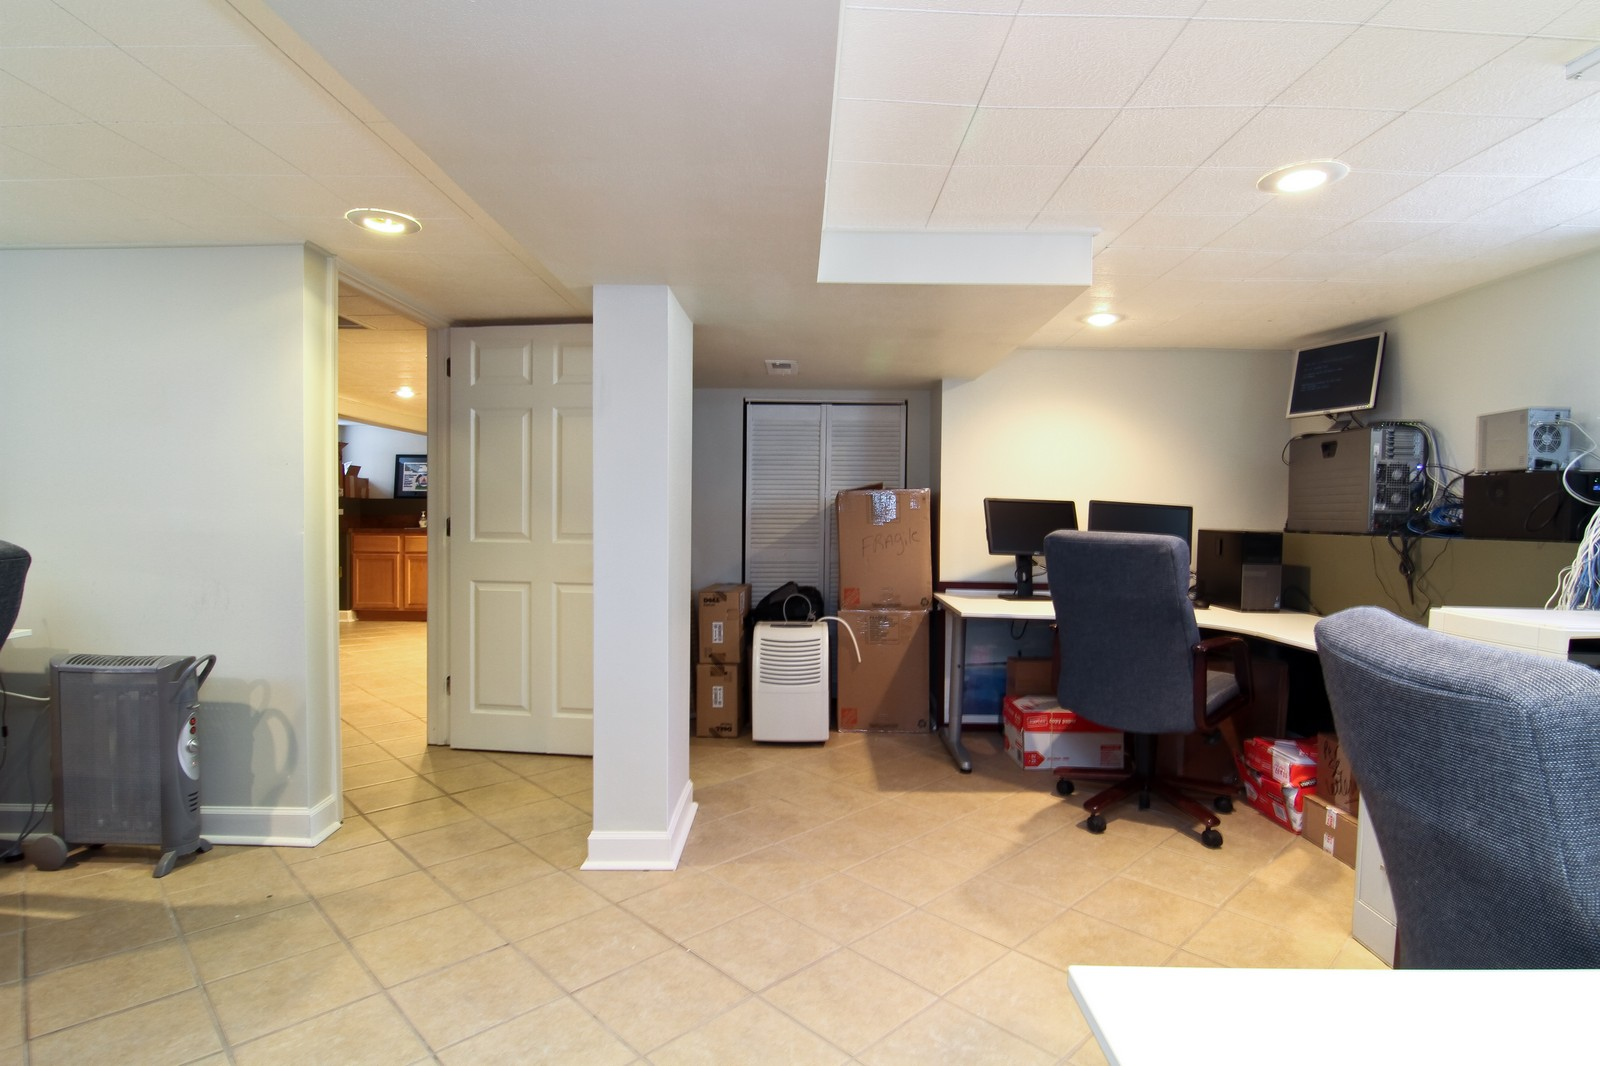 Real Estate Photography - 310 S Hale St, Wheaton, IL, 60187 - Location 2